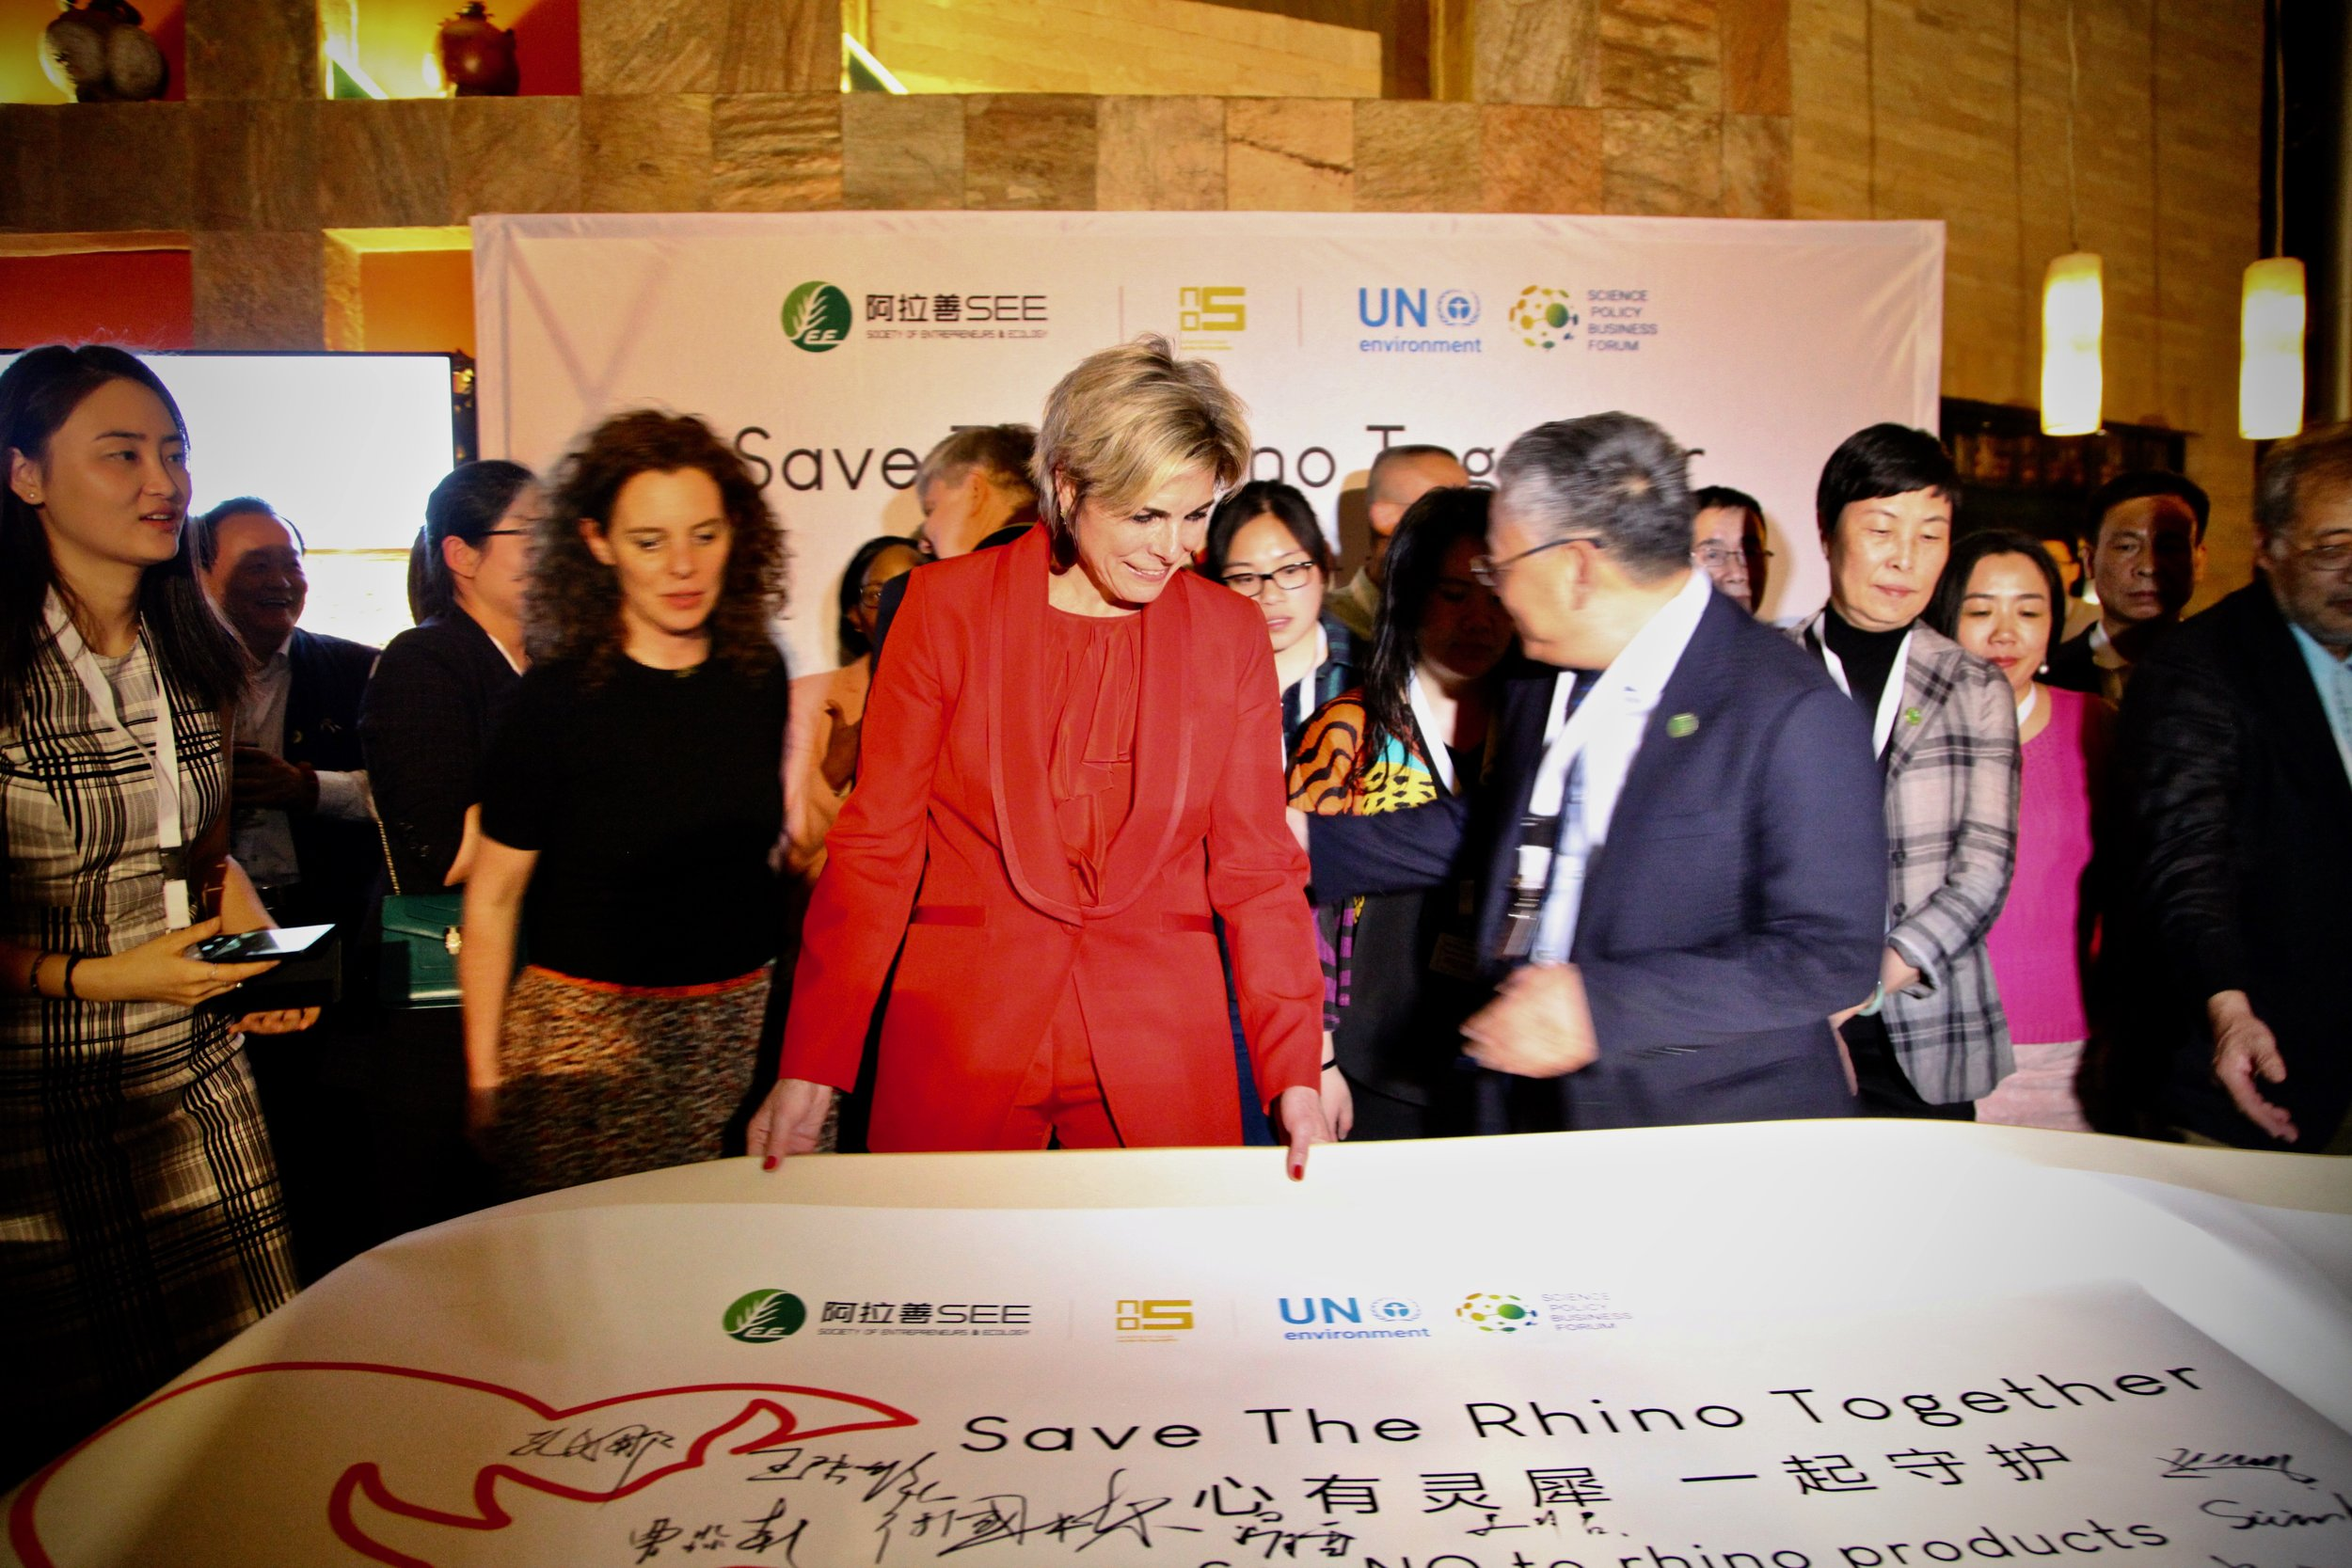 UN Save the Rhino Together Laurentien Kenya CEE China by Joost Bastmeijer 4.jpeg